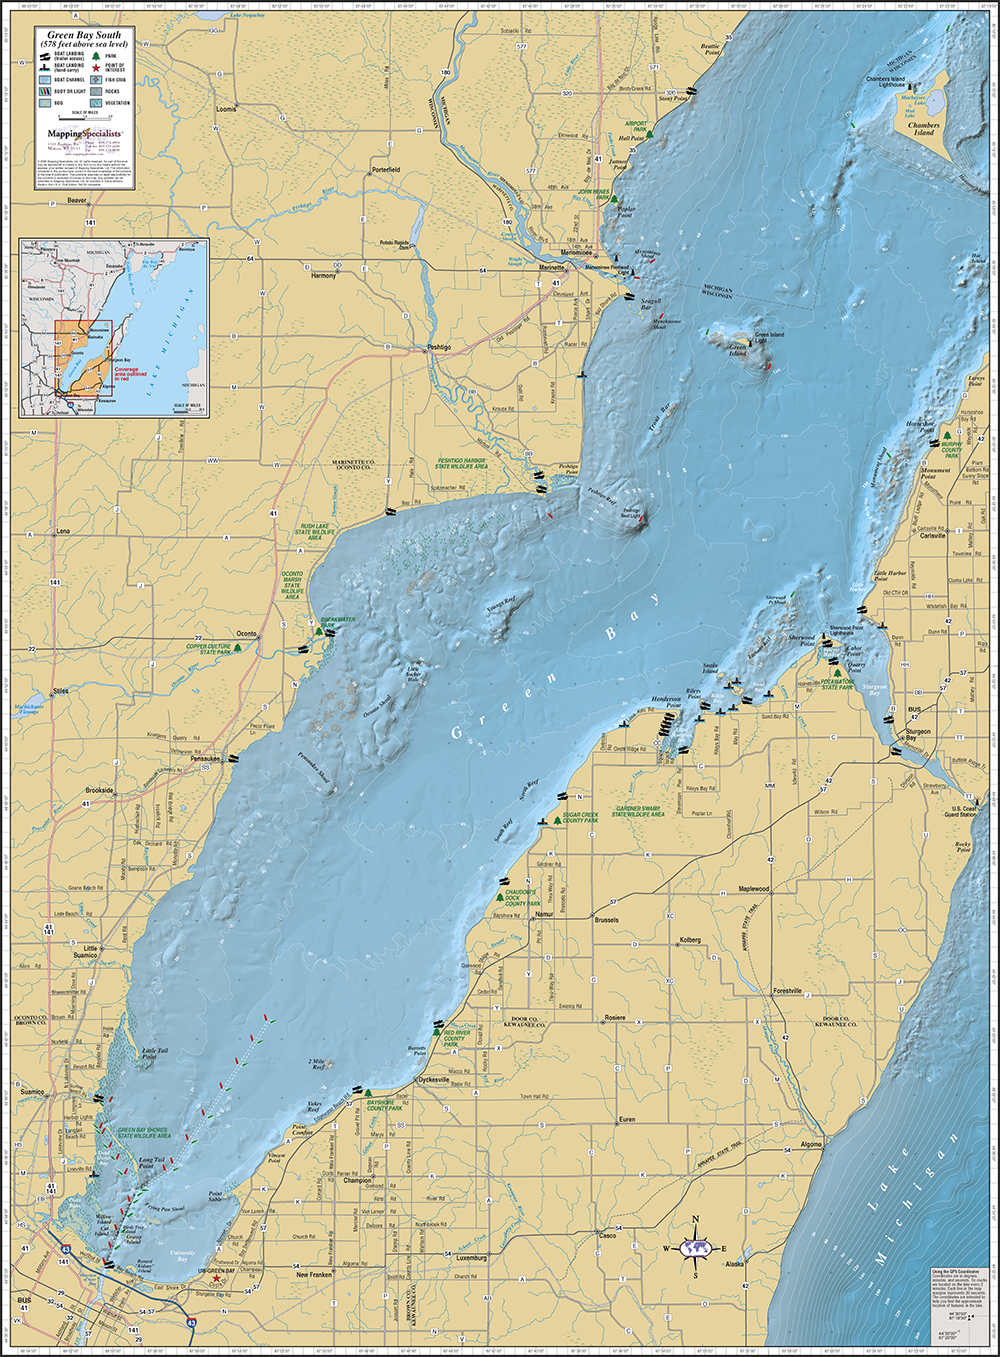 Https Www Mappingspecialists Com Store Green Bay Southern Wall Map